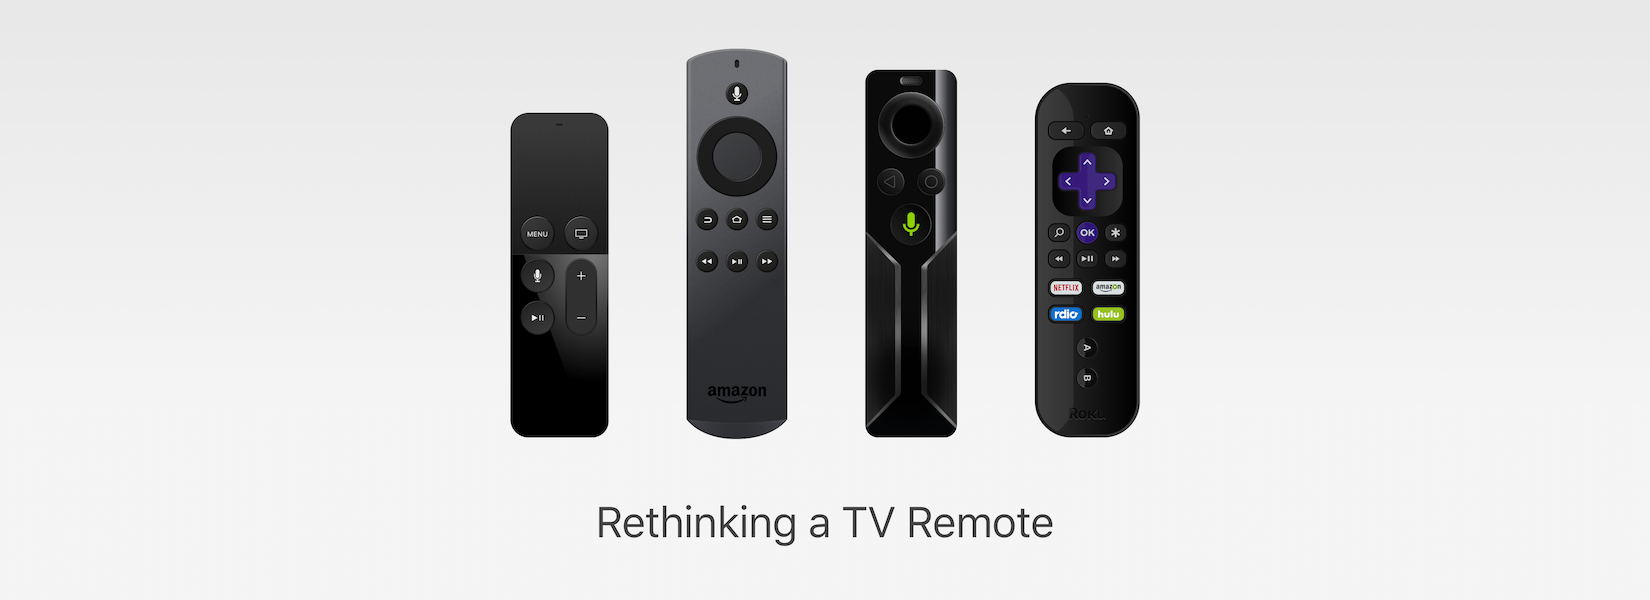 Rethinking a TV Remote for Senior Citizens ~ Skcript Research